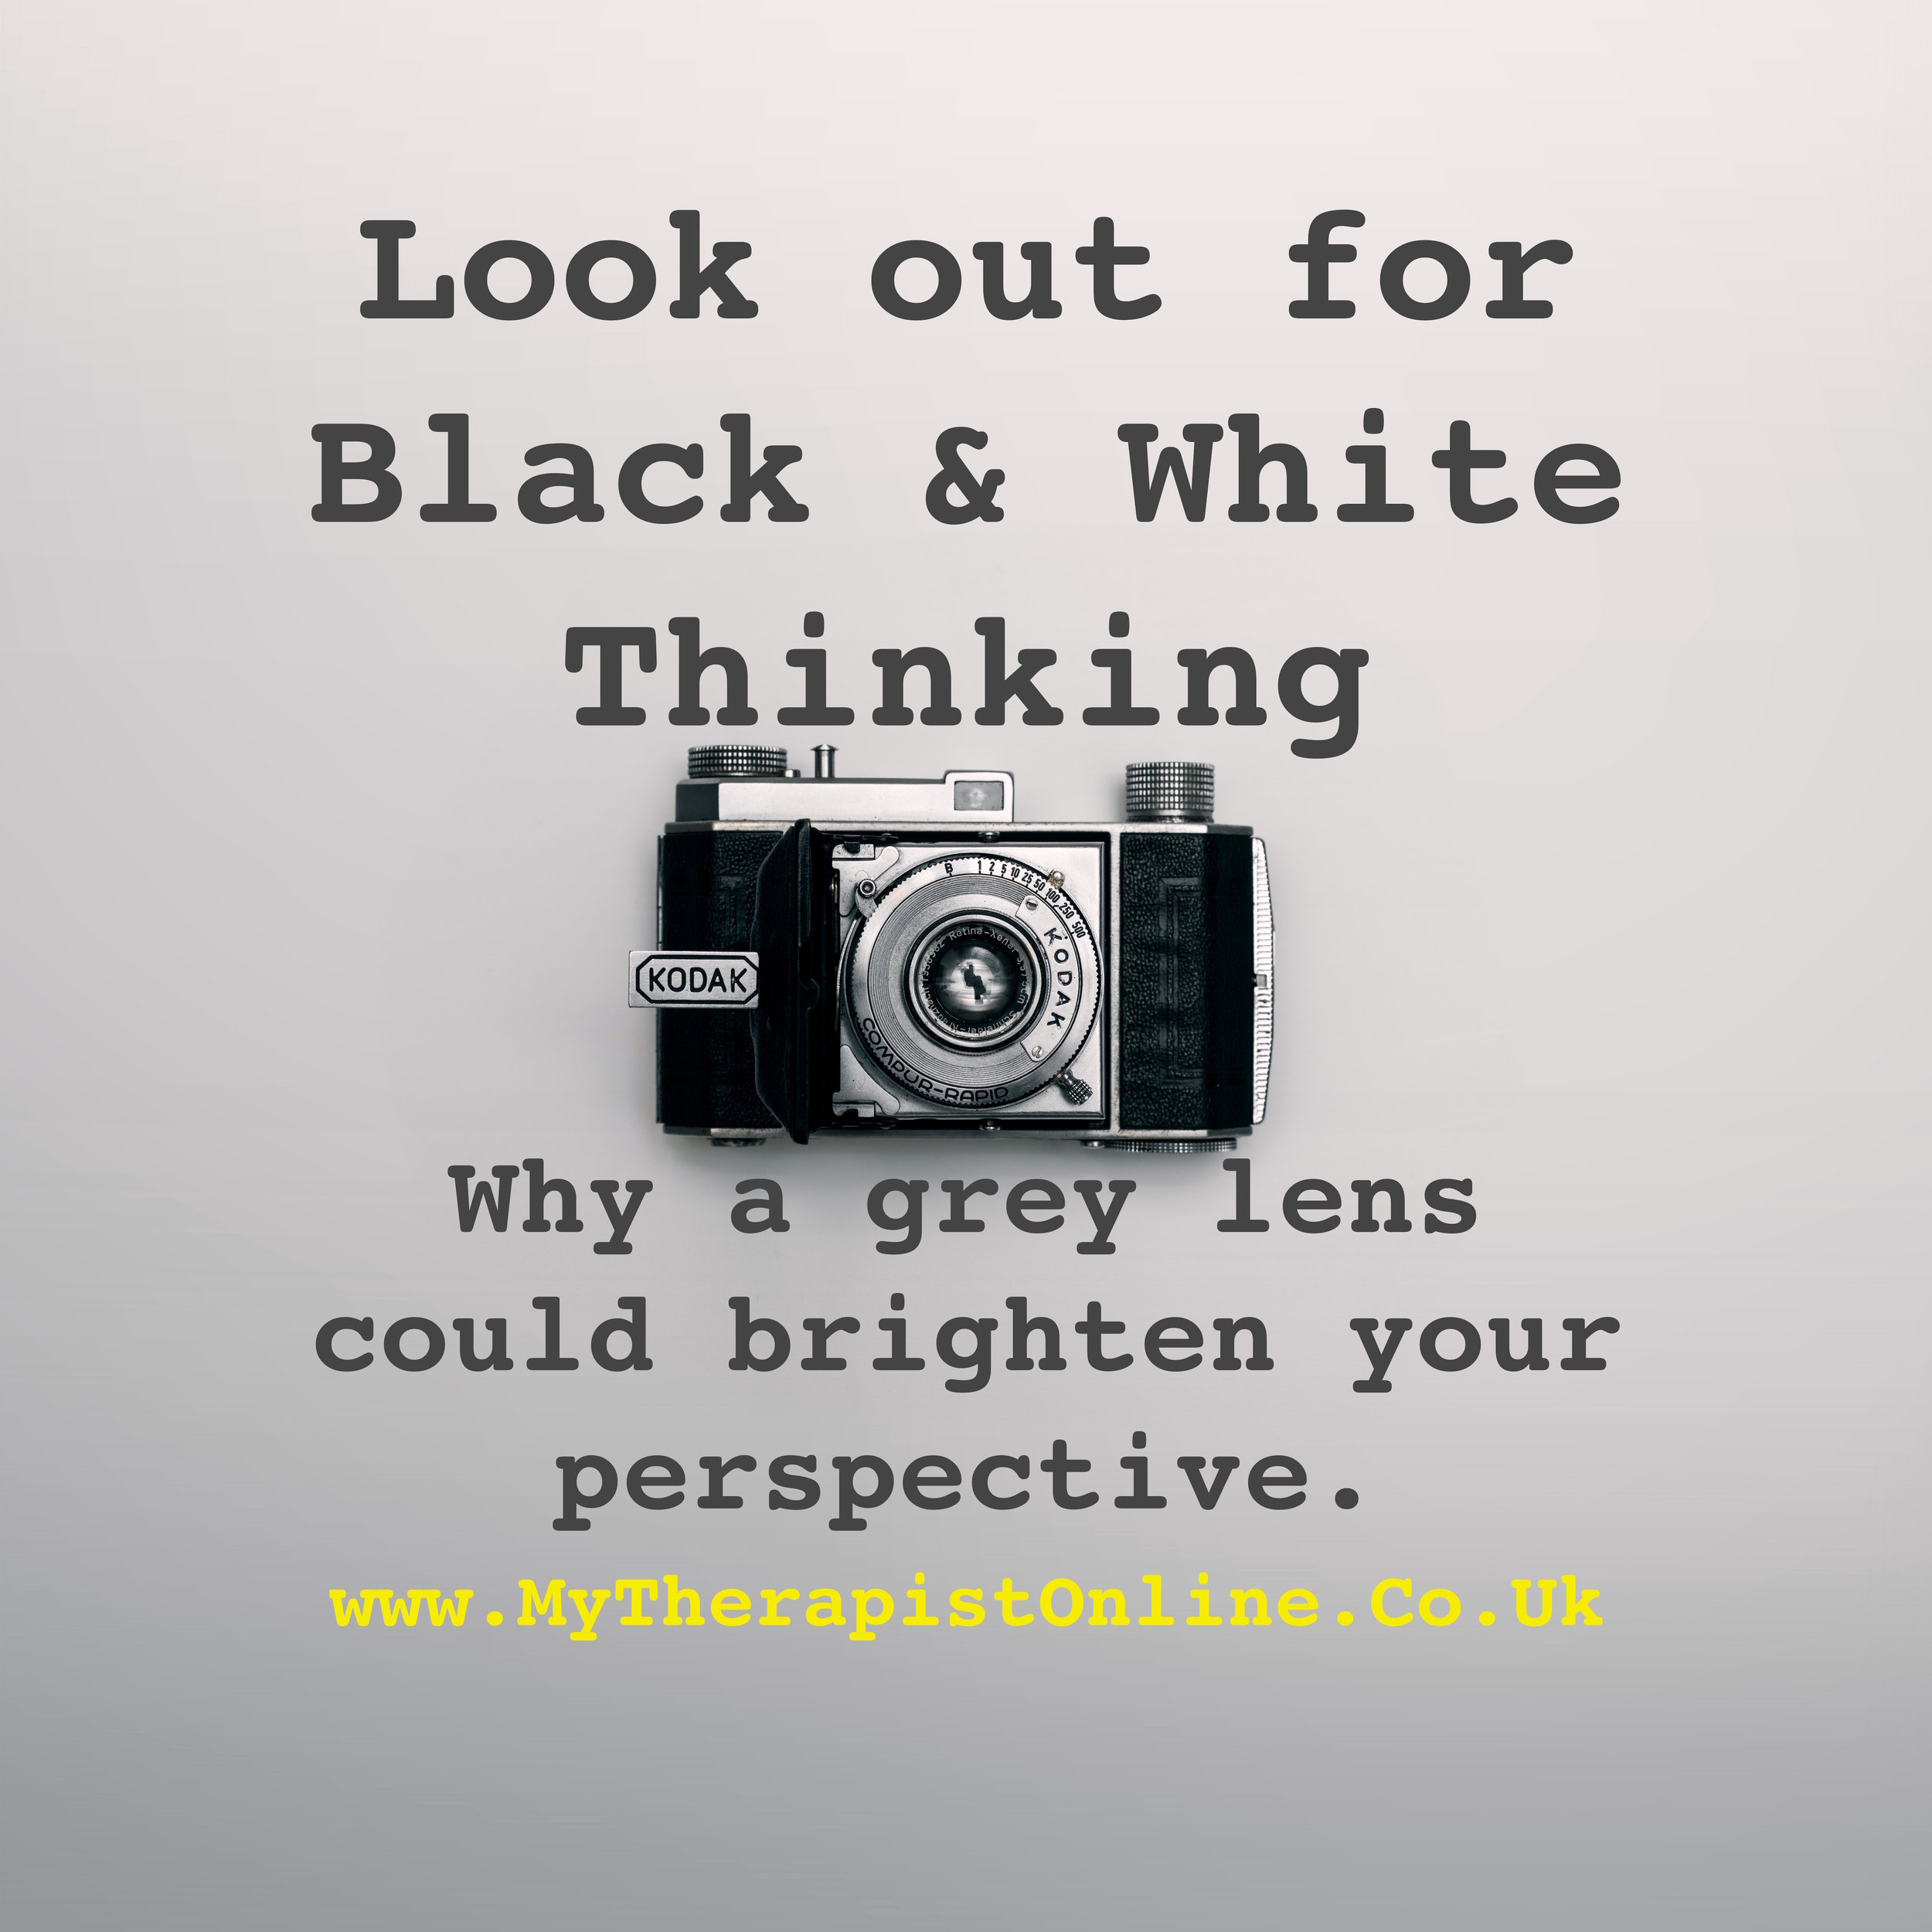 CBT Therapy + UK + Near me + Black and white thinking